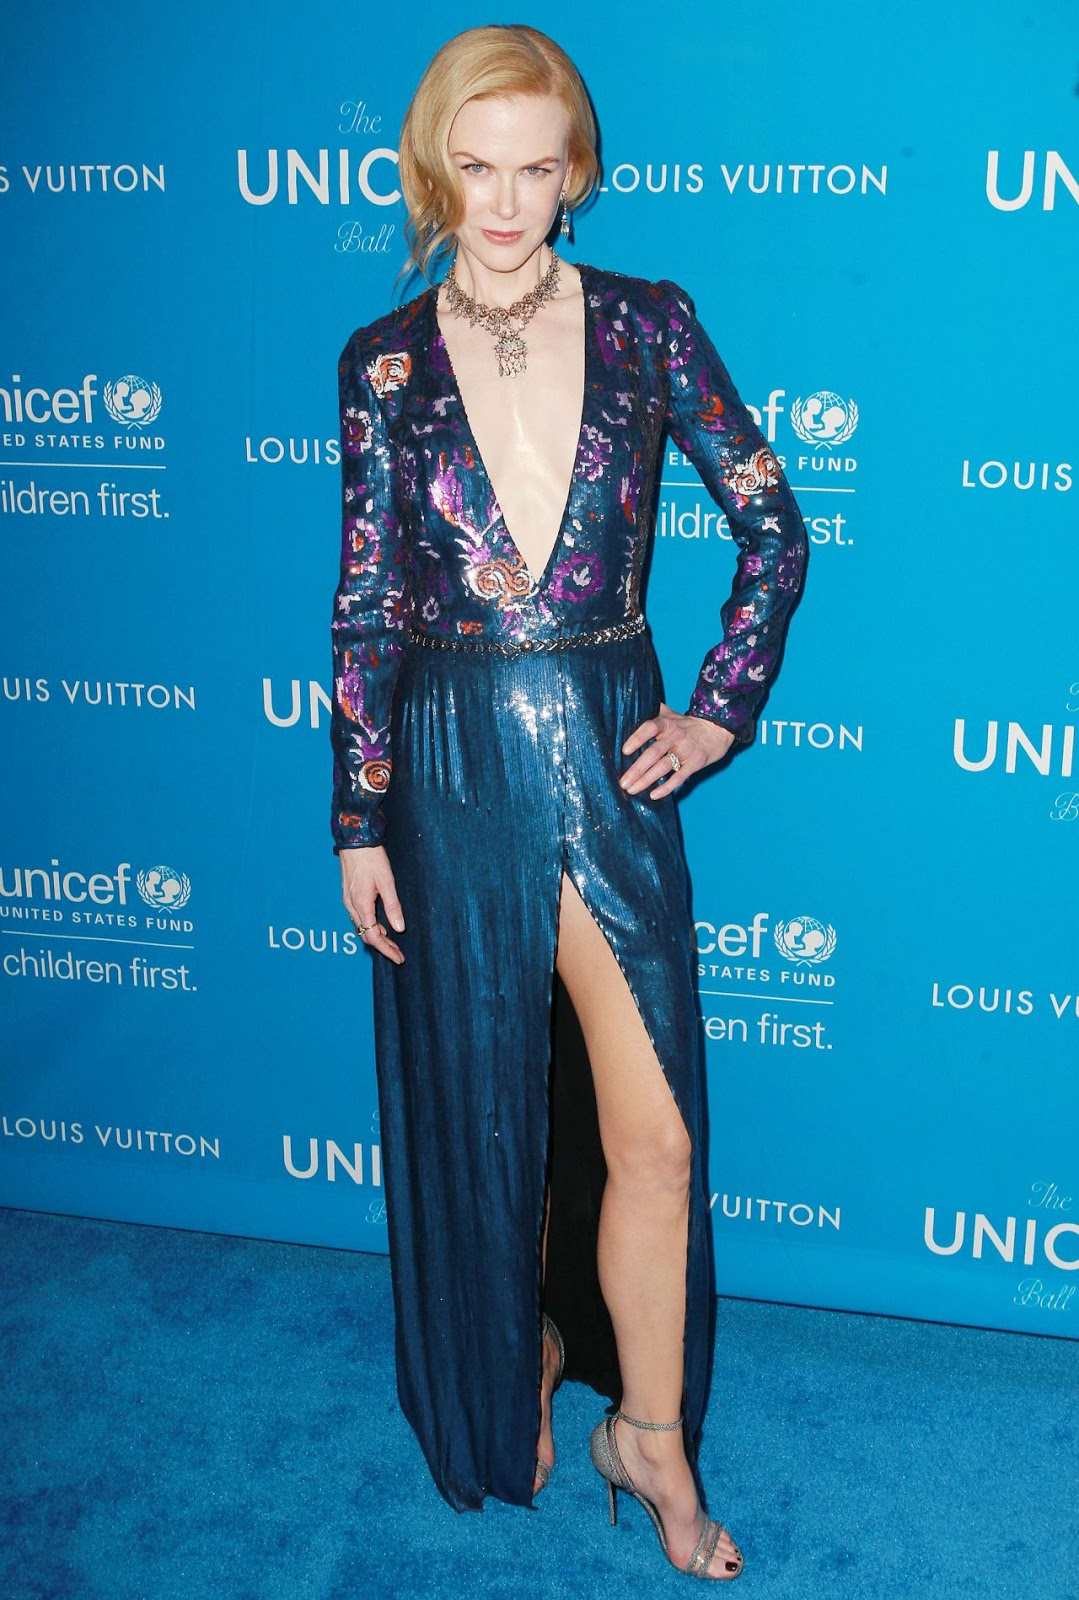 Nicole Kidman Dazzles in Fred Leighton at the UNICEF Ball